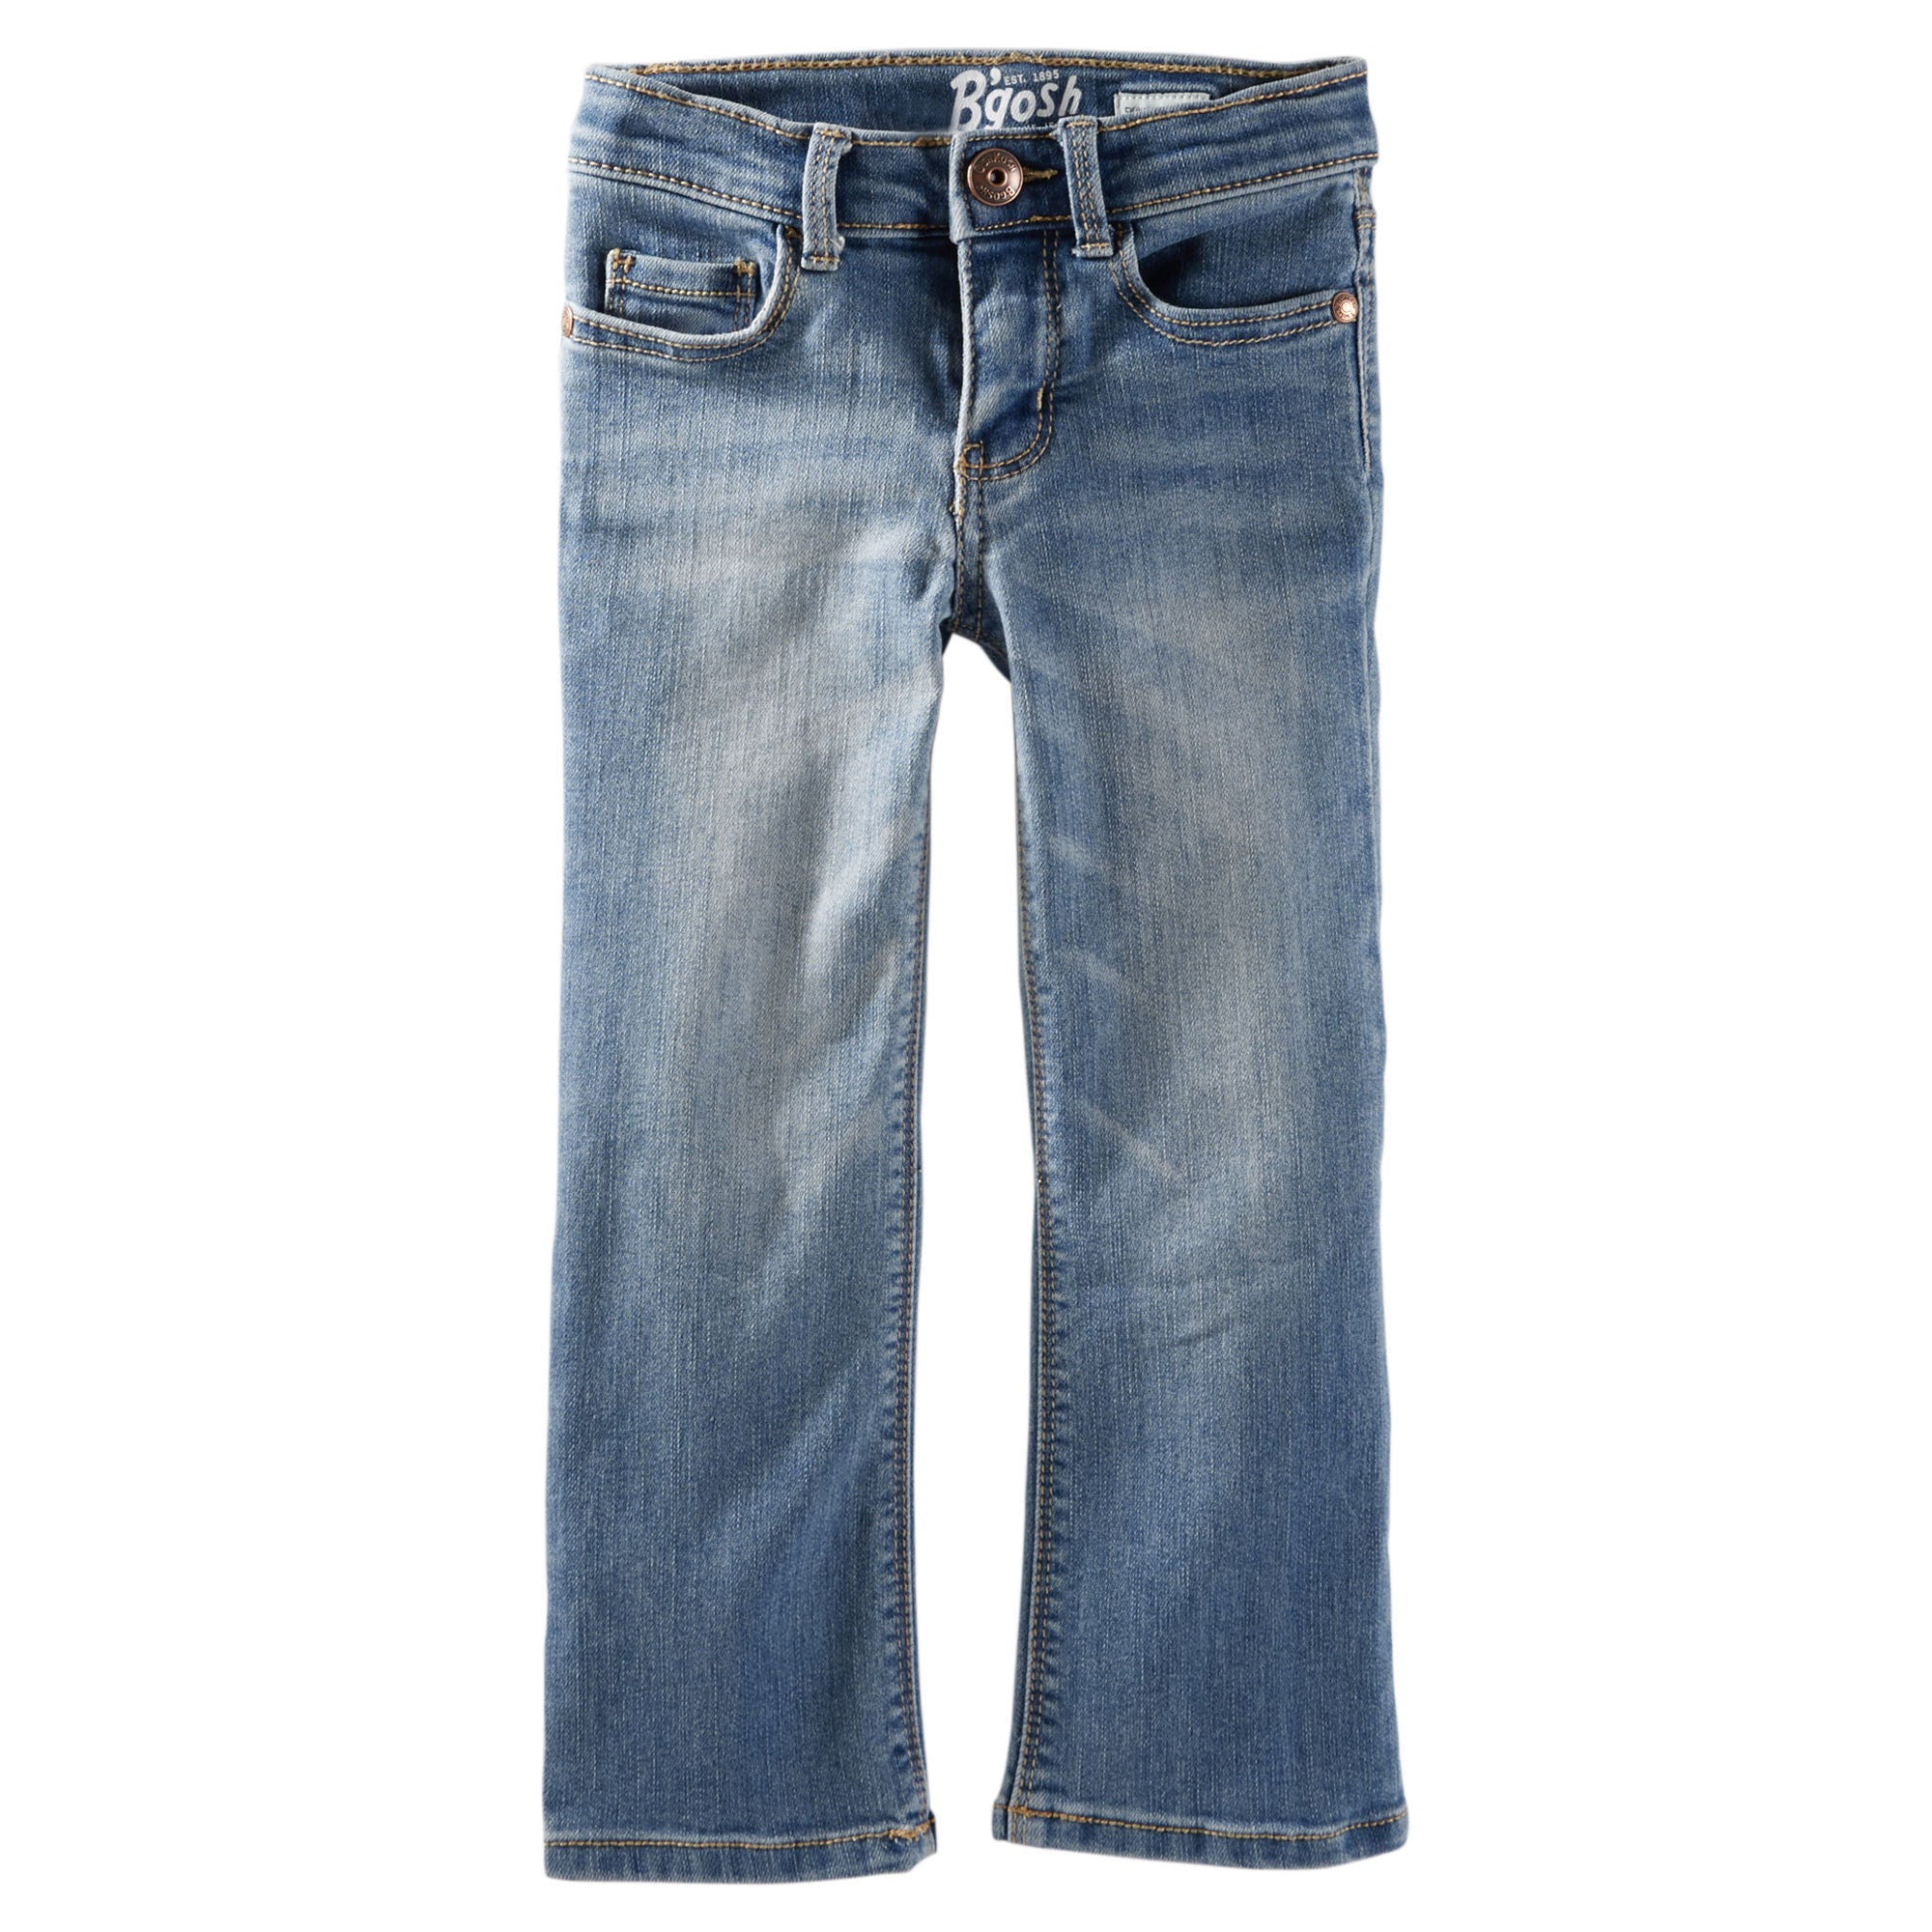 Soft Bootcut Jeans - Upstate Blue